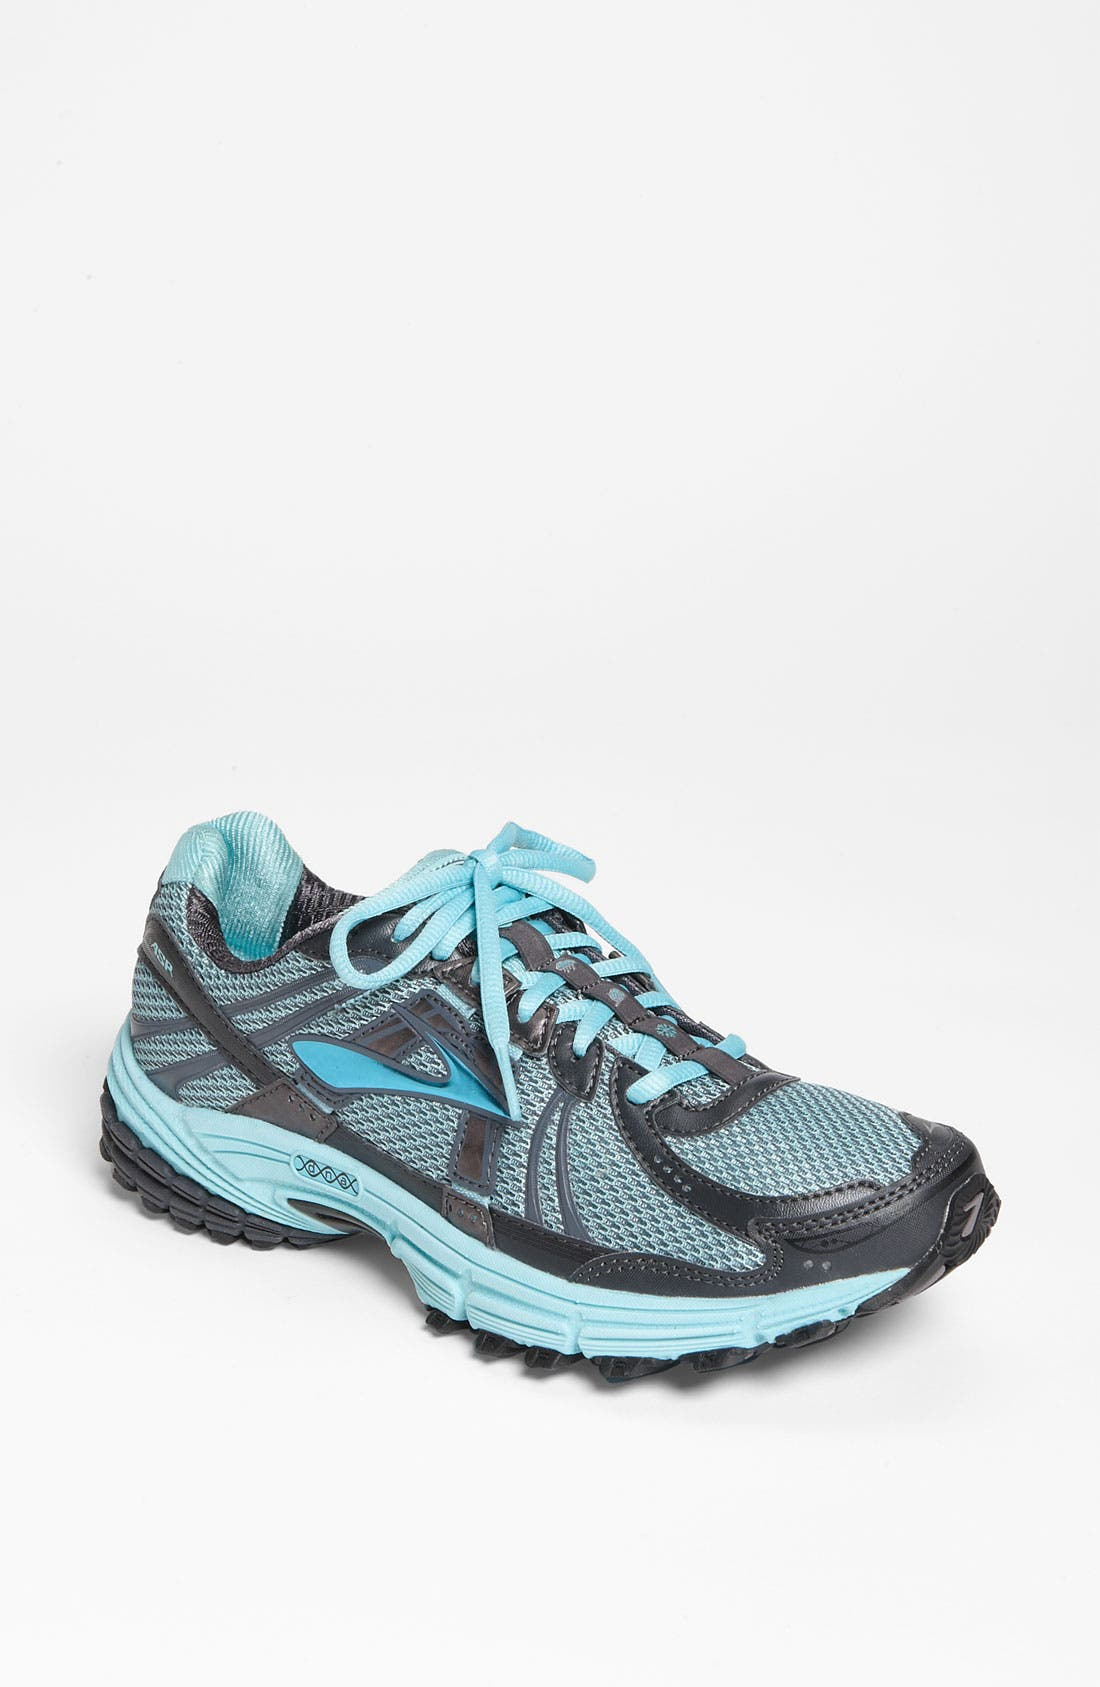 Alternate Image 1 Selected - Brooks 'Adrenaline ASR 9' Trail Running Shoe (Women)(Retail Price: $119.95)